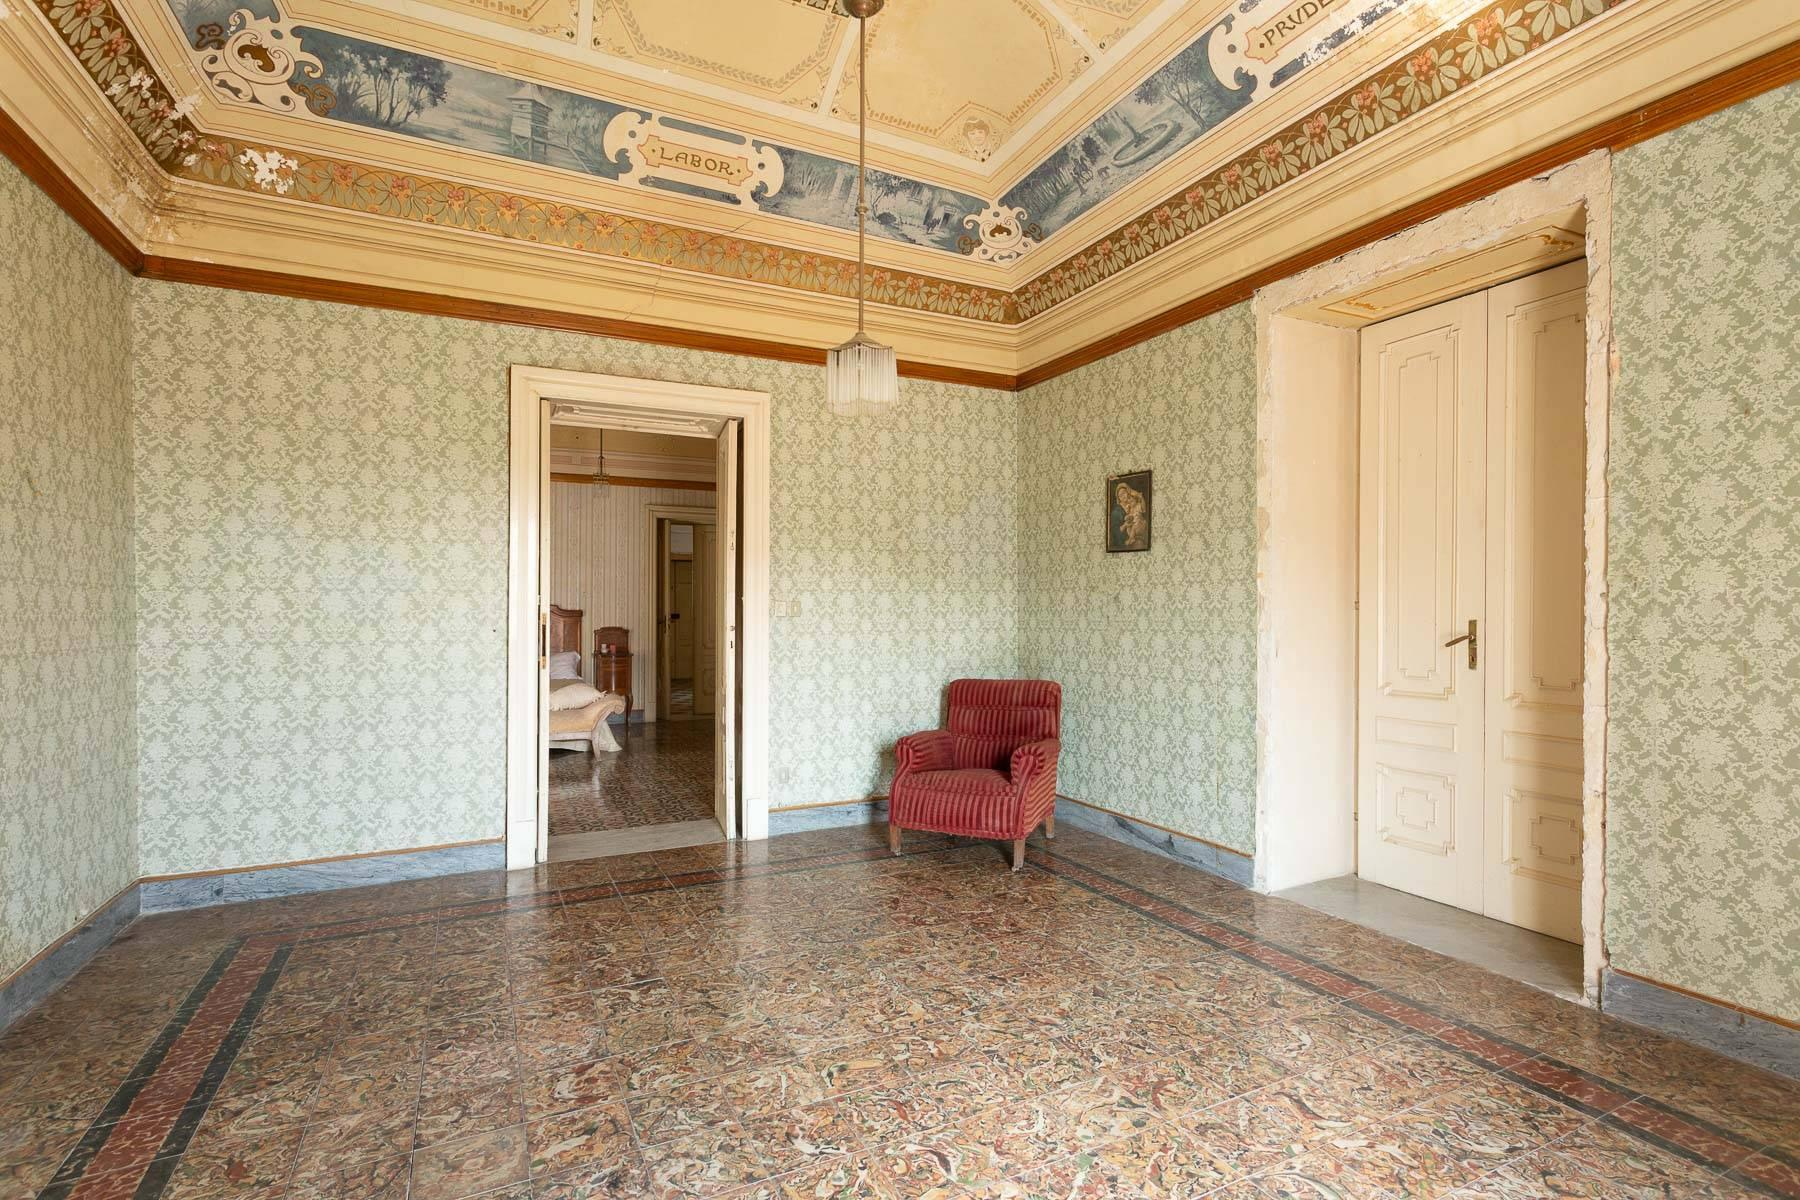 Noble Palace in Palazzolo Acreide - 16